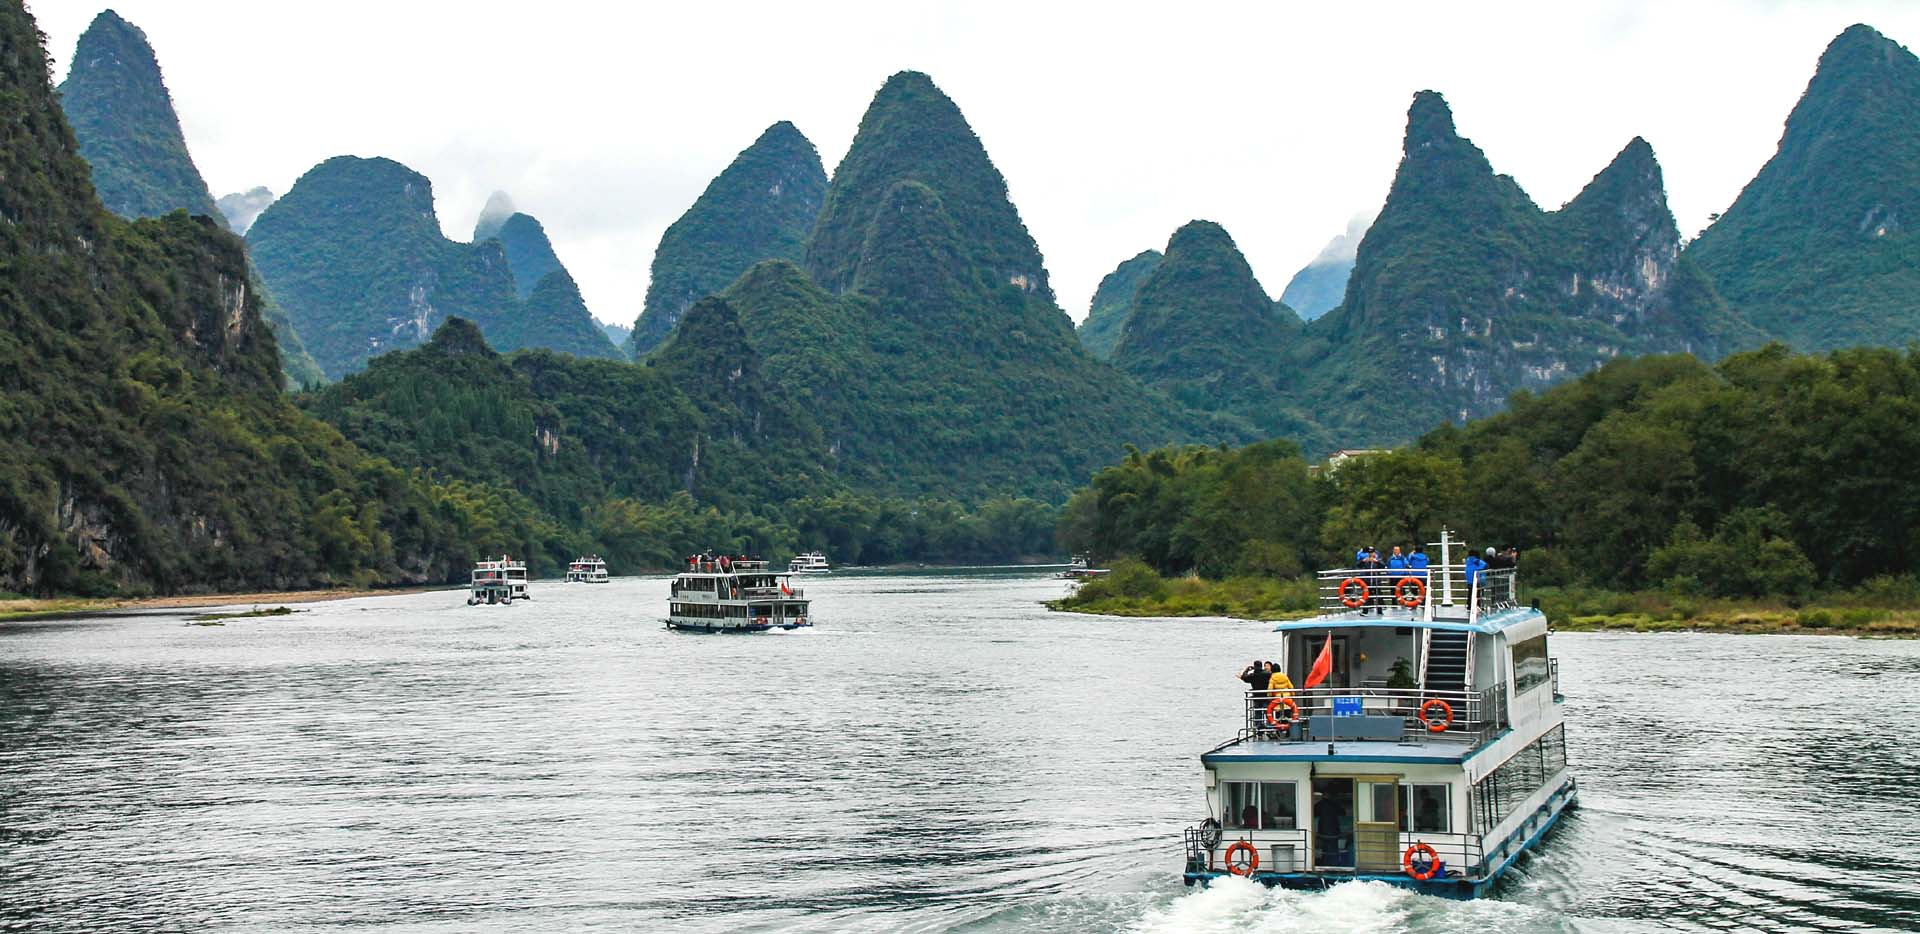 Li River Cruise through Karst Mountain Peaks